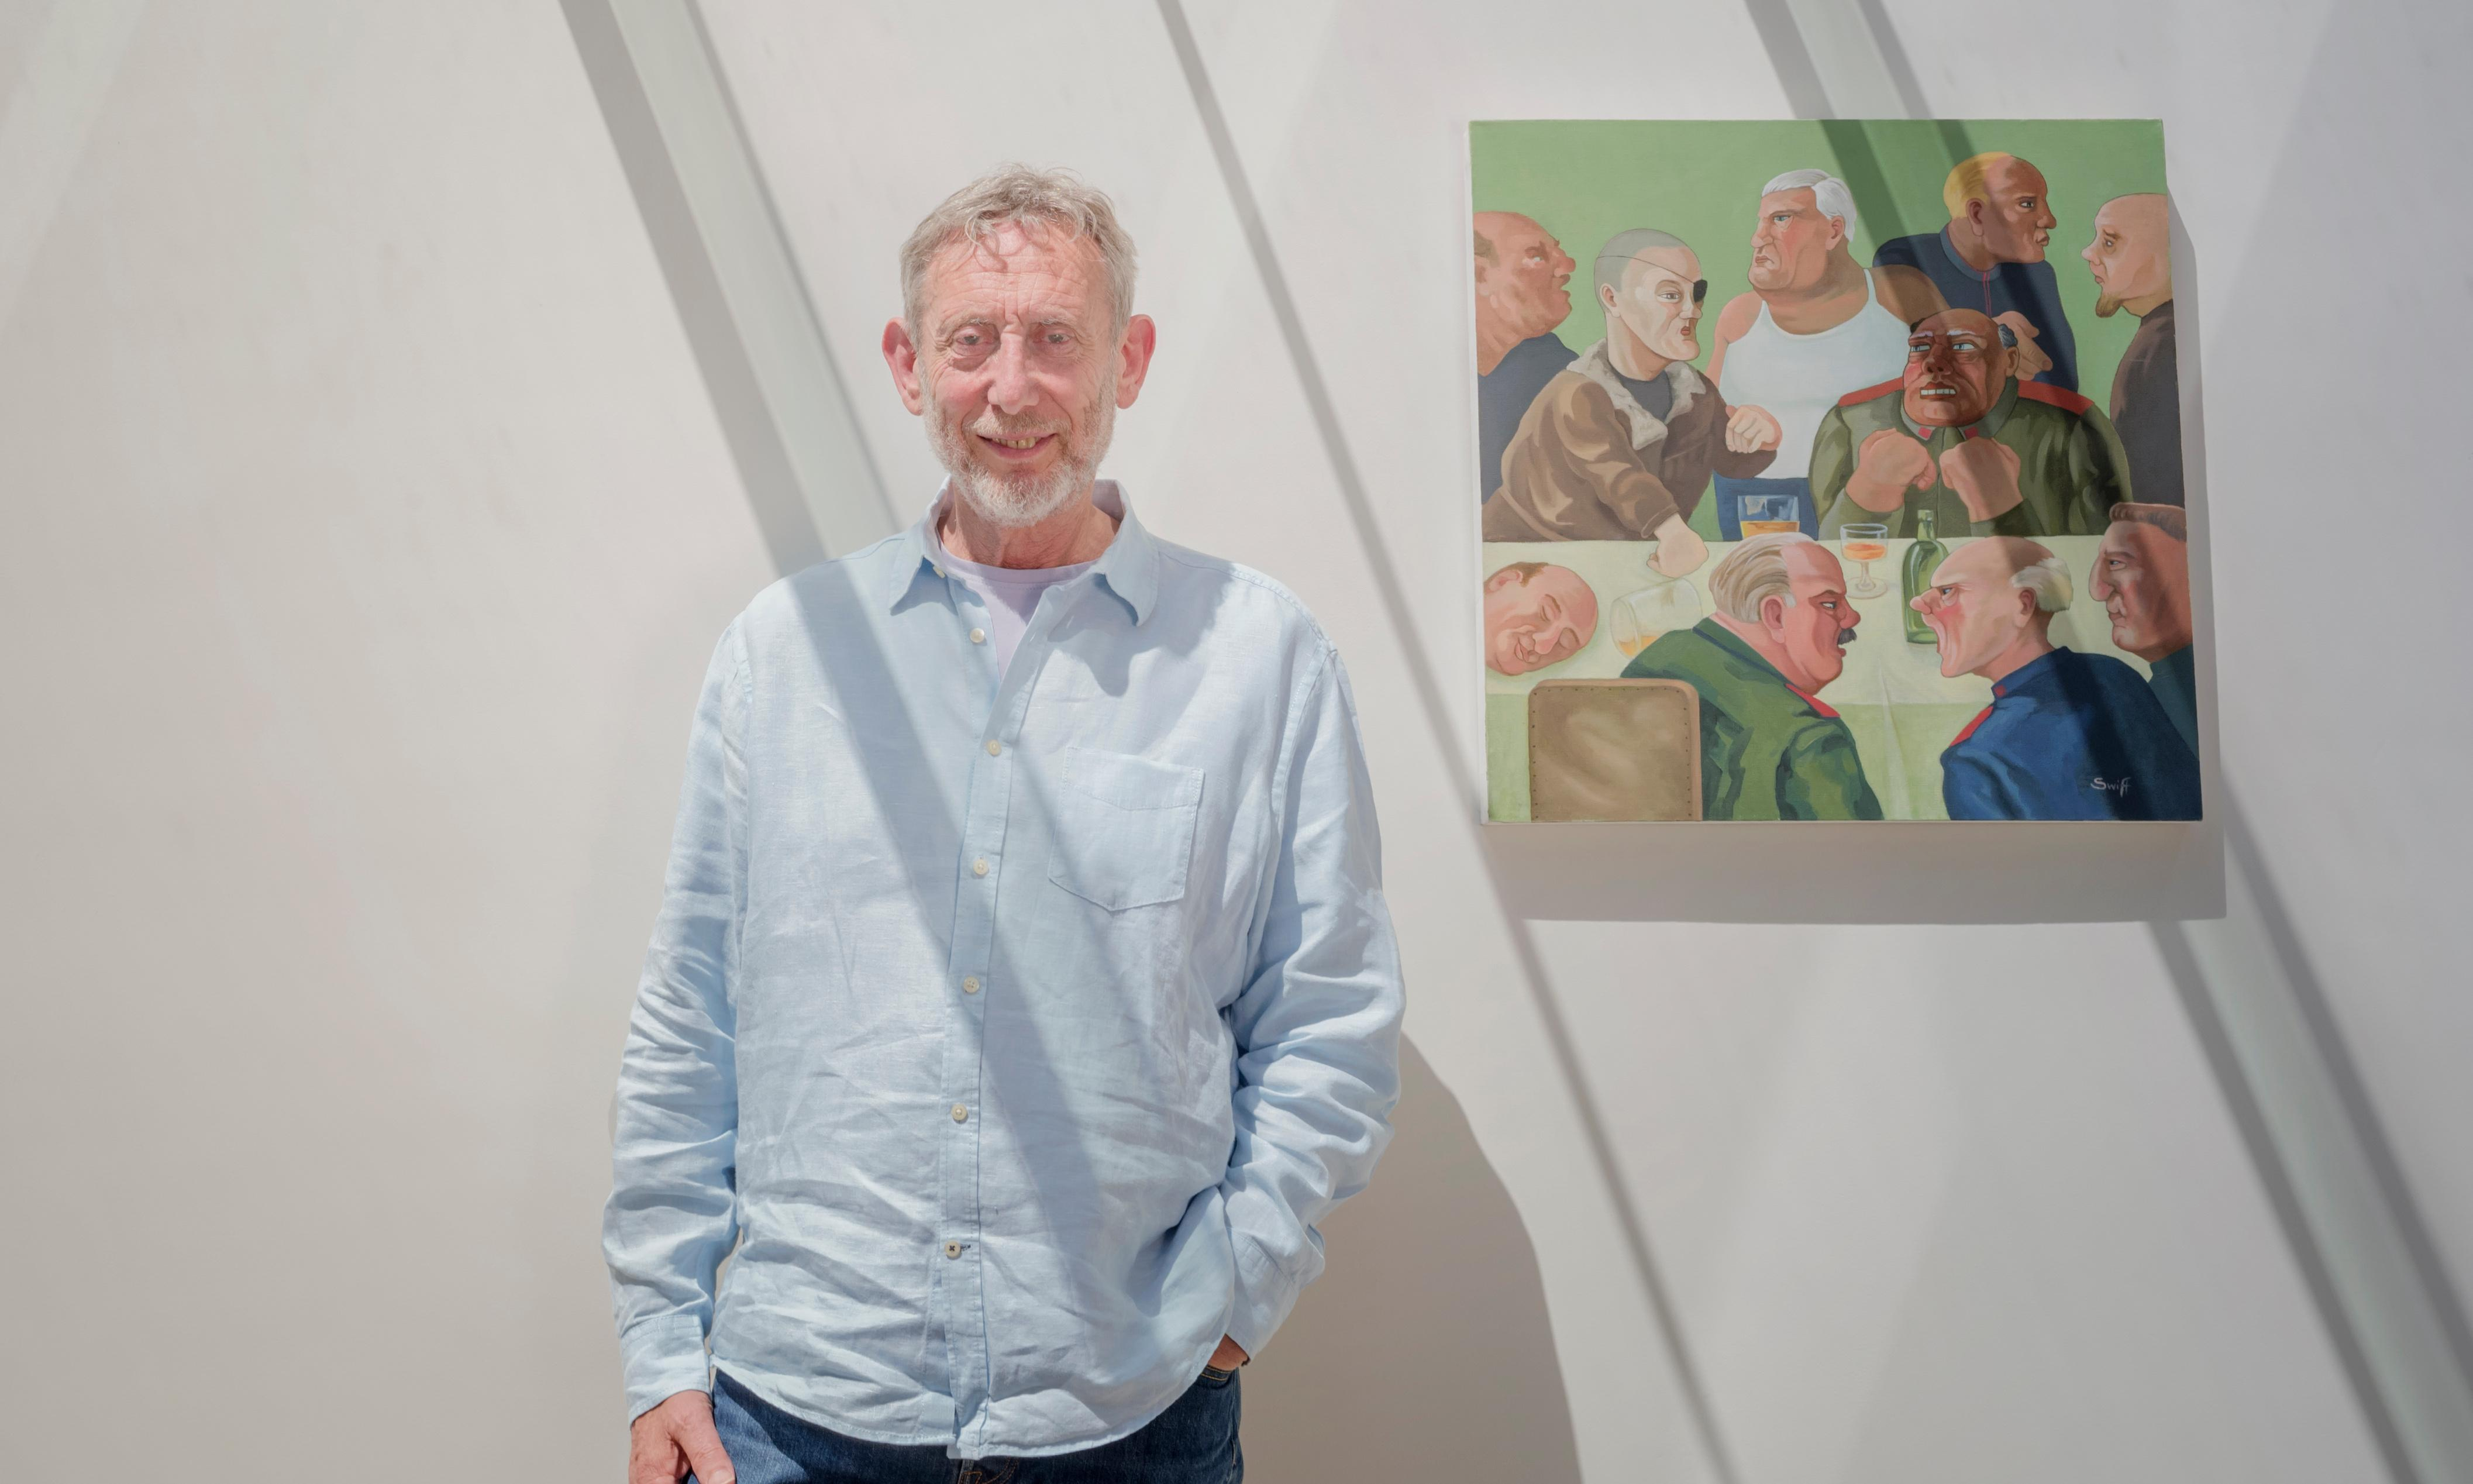 Michael Rosen: 'If I hadn't written poems about my son Eddie, I might have lost those memories'